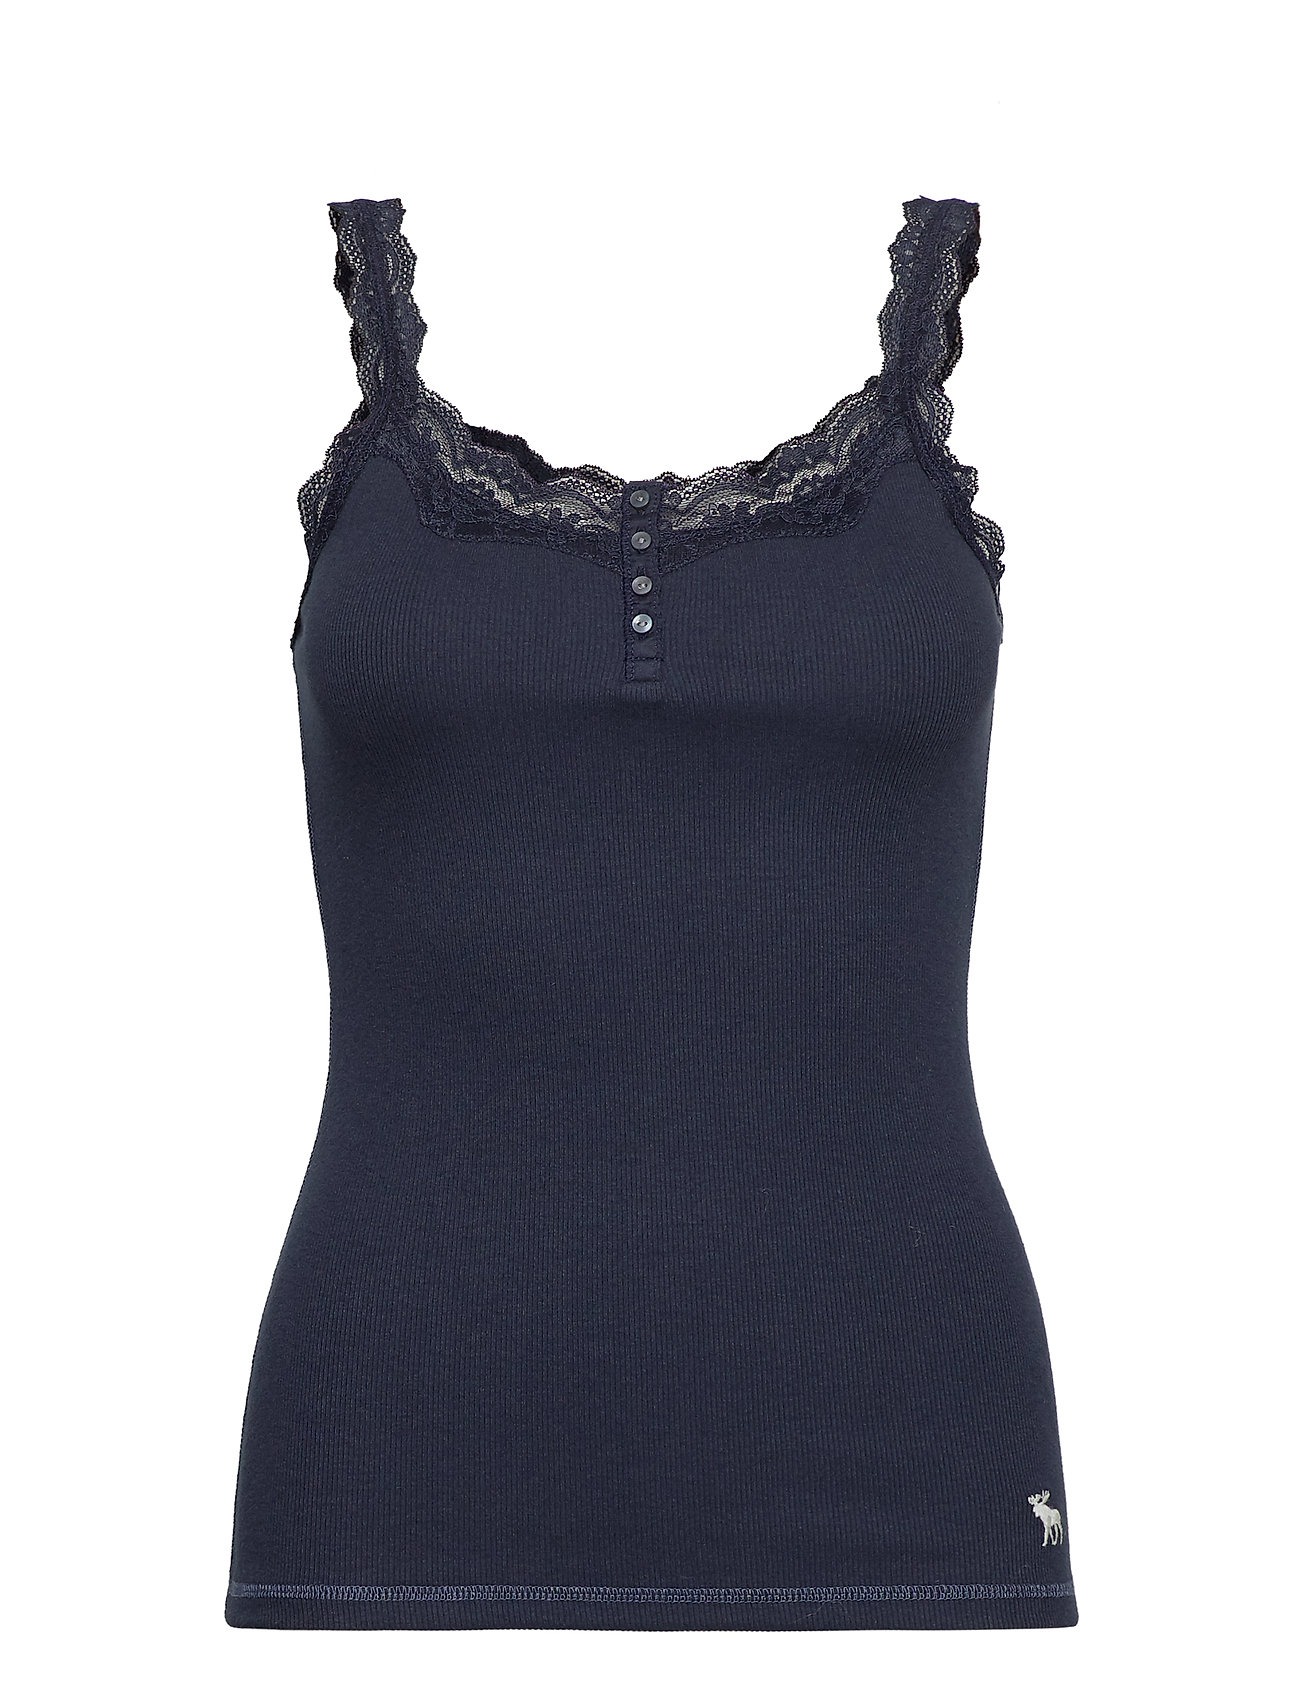 Abercrombie & Fitch Icon Lace Cami - NAVY DD